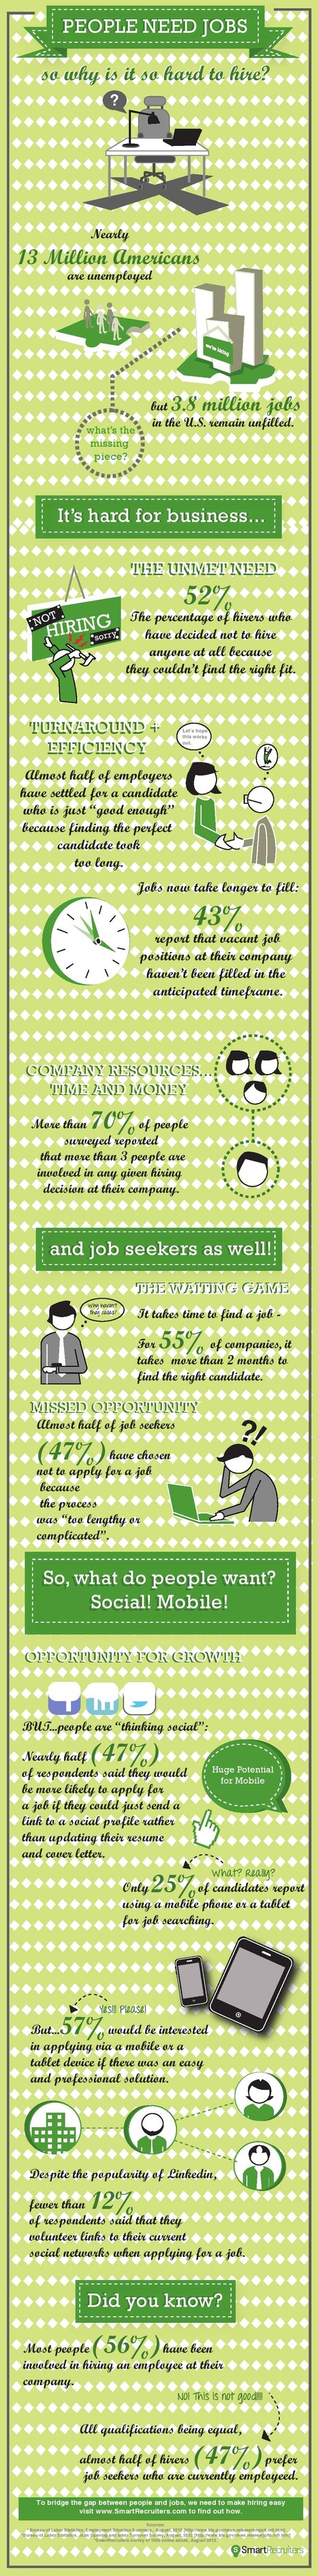 If People Need Jobs, Why Is It So Hard to Hire? [INFOGRAPHIC] | EPIC Infographic | Scoop.it